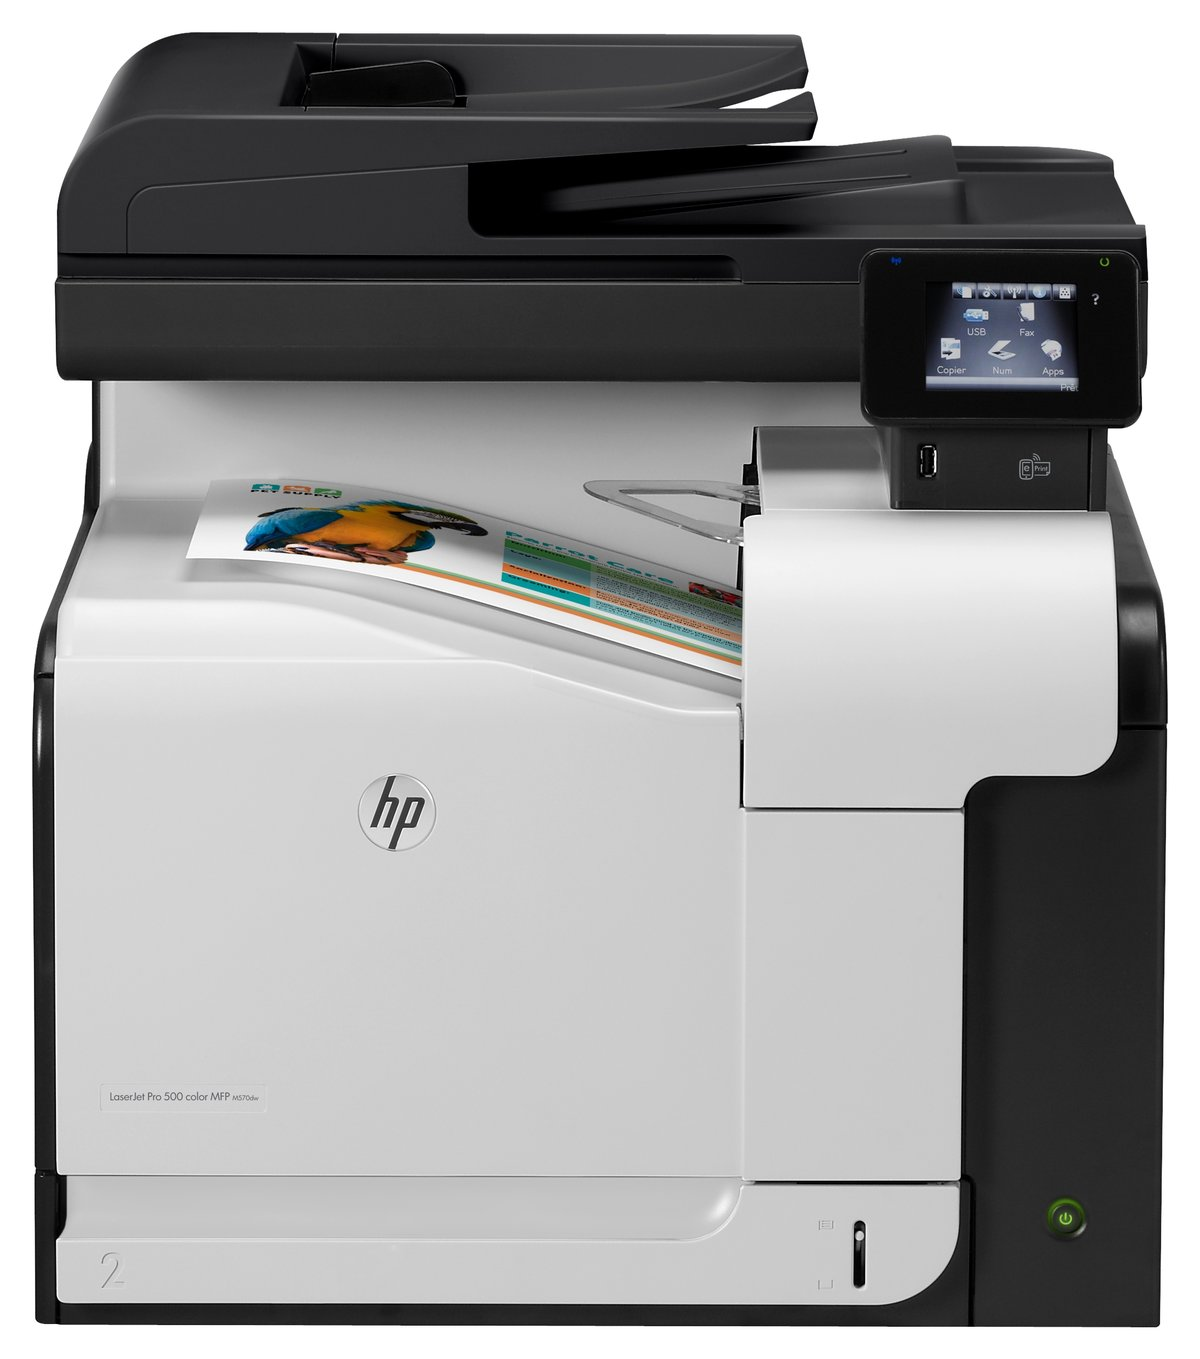 hp laserjet 500 mfp m525 printer driver